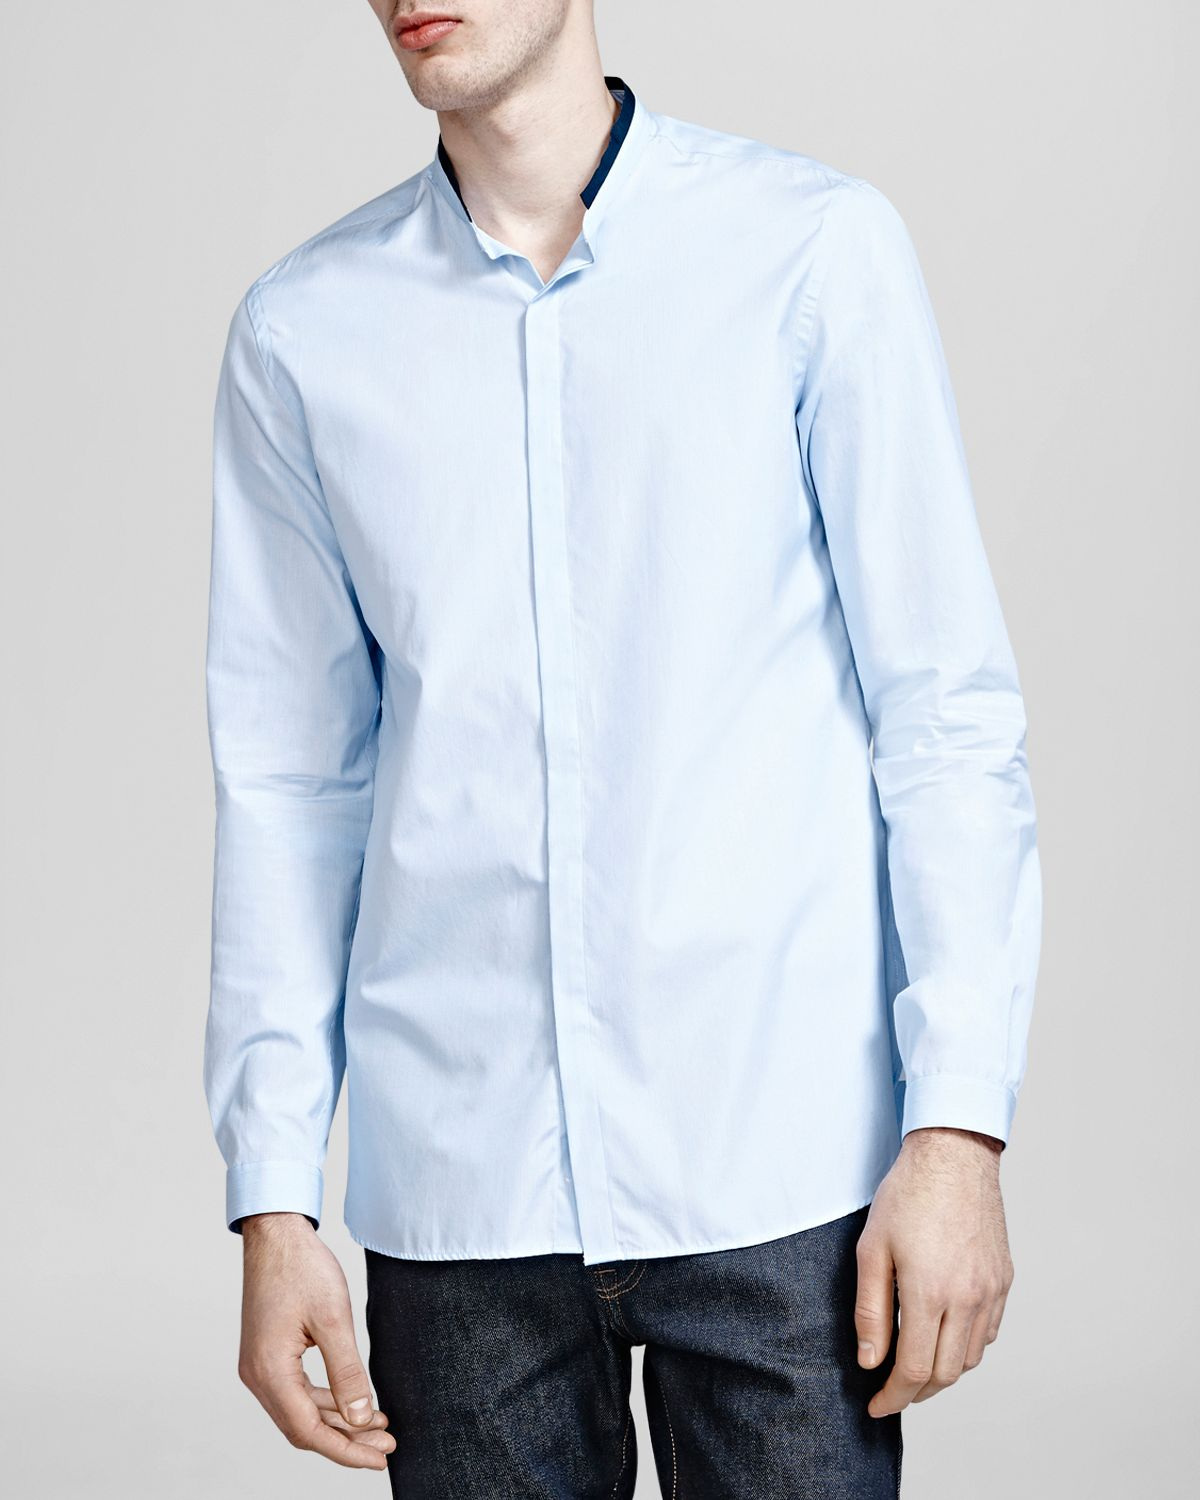 Lyst The Kooples Classic Stripes Button Down Shirt